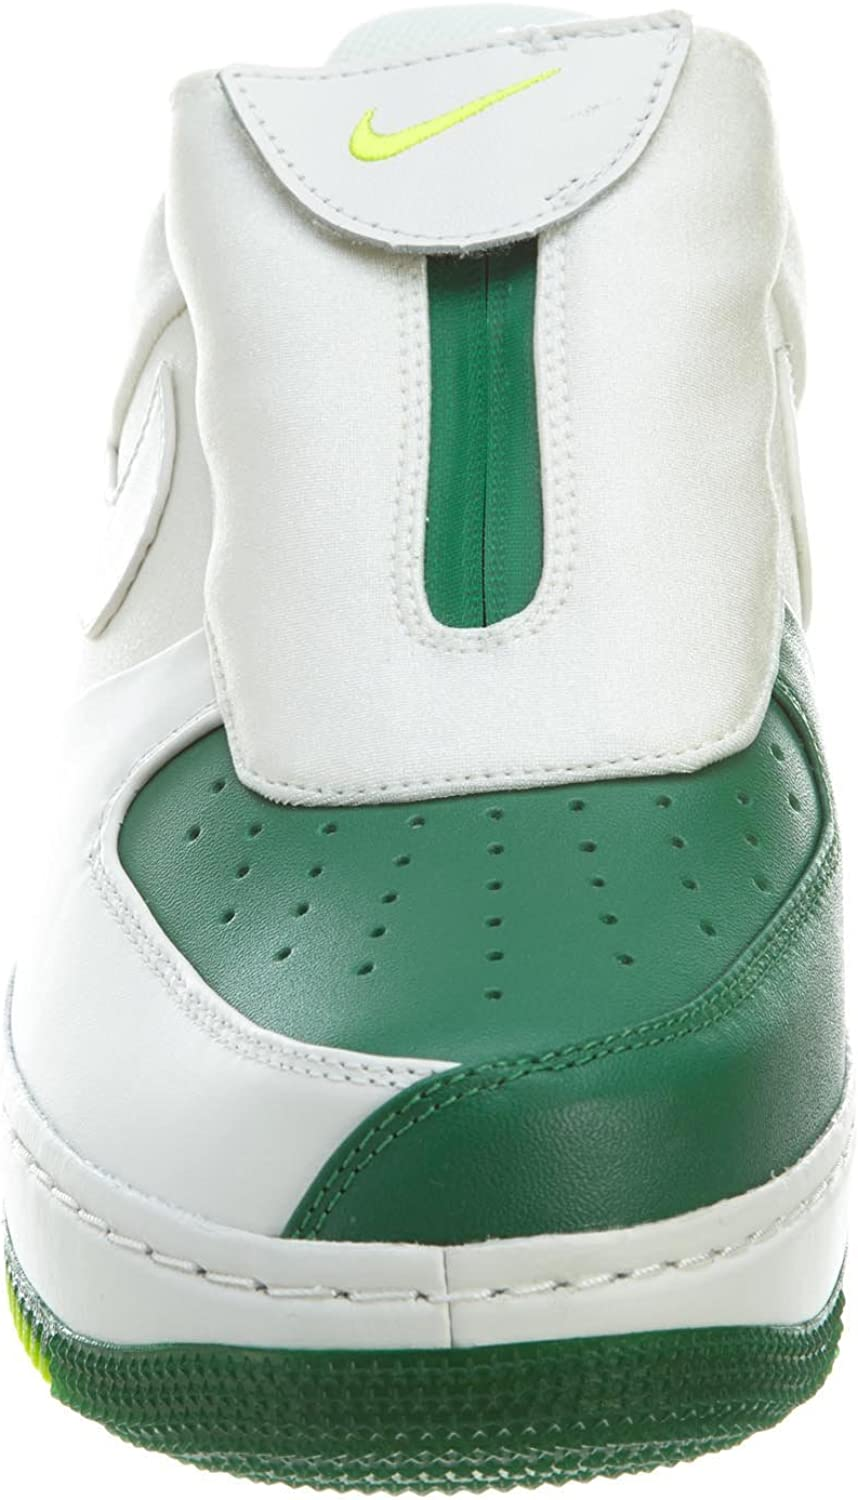 Nike air Force 1 Low CMFT LW GP SIG Gary Payton AF1 Glove Mens Trainers 616760 100 Sneakers Shoes